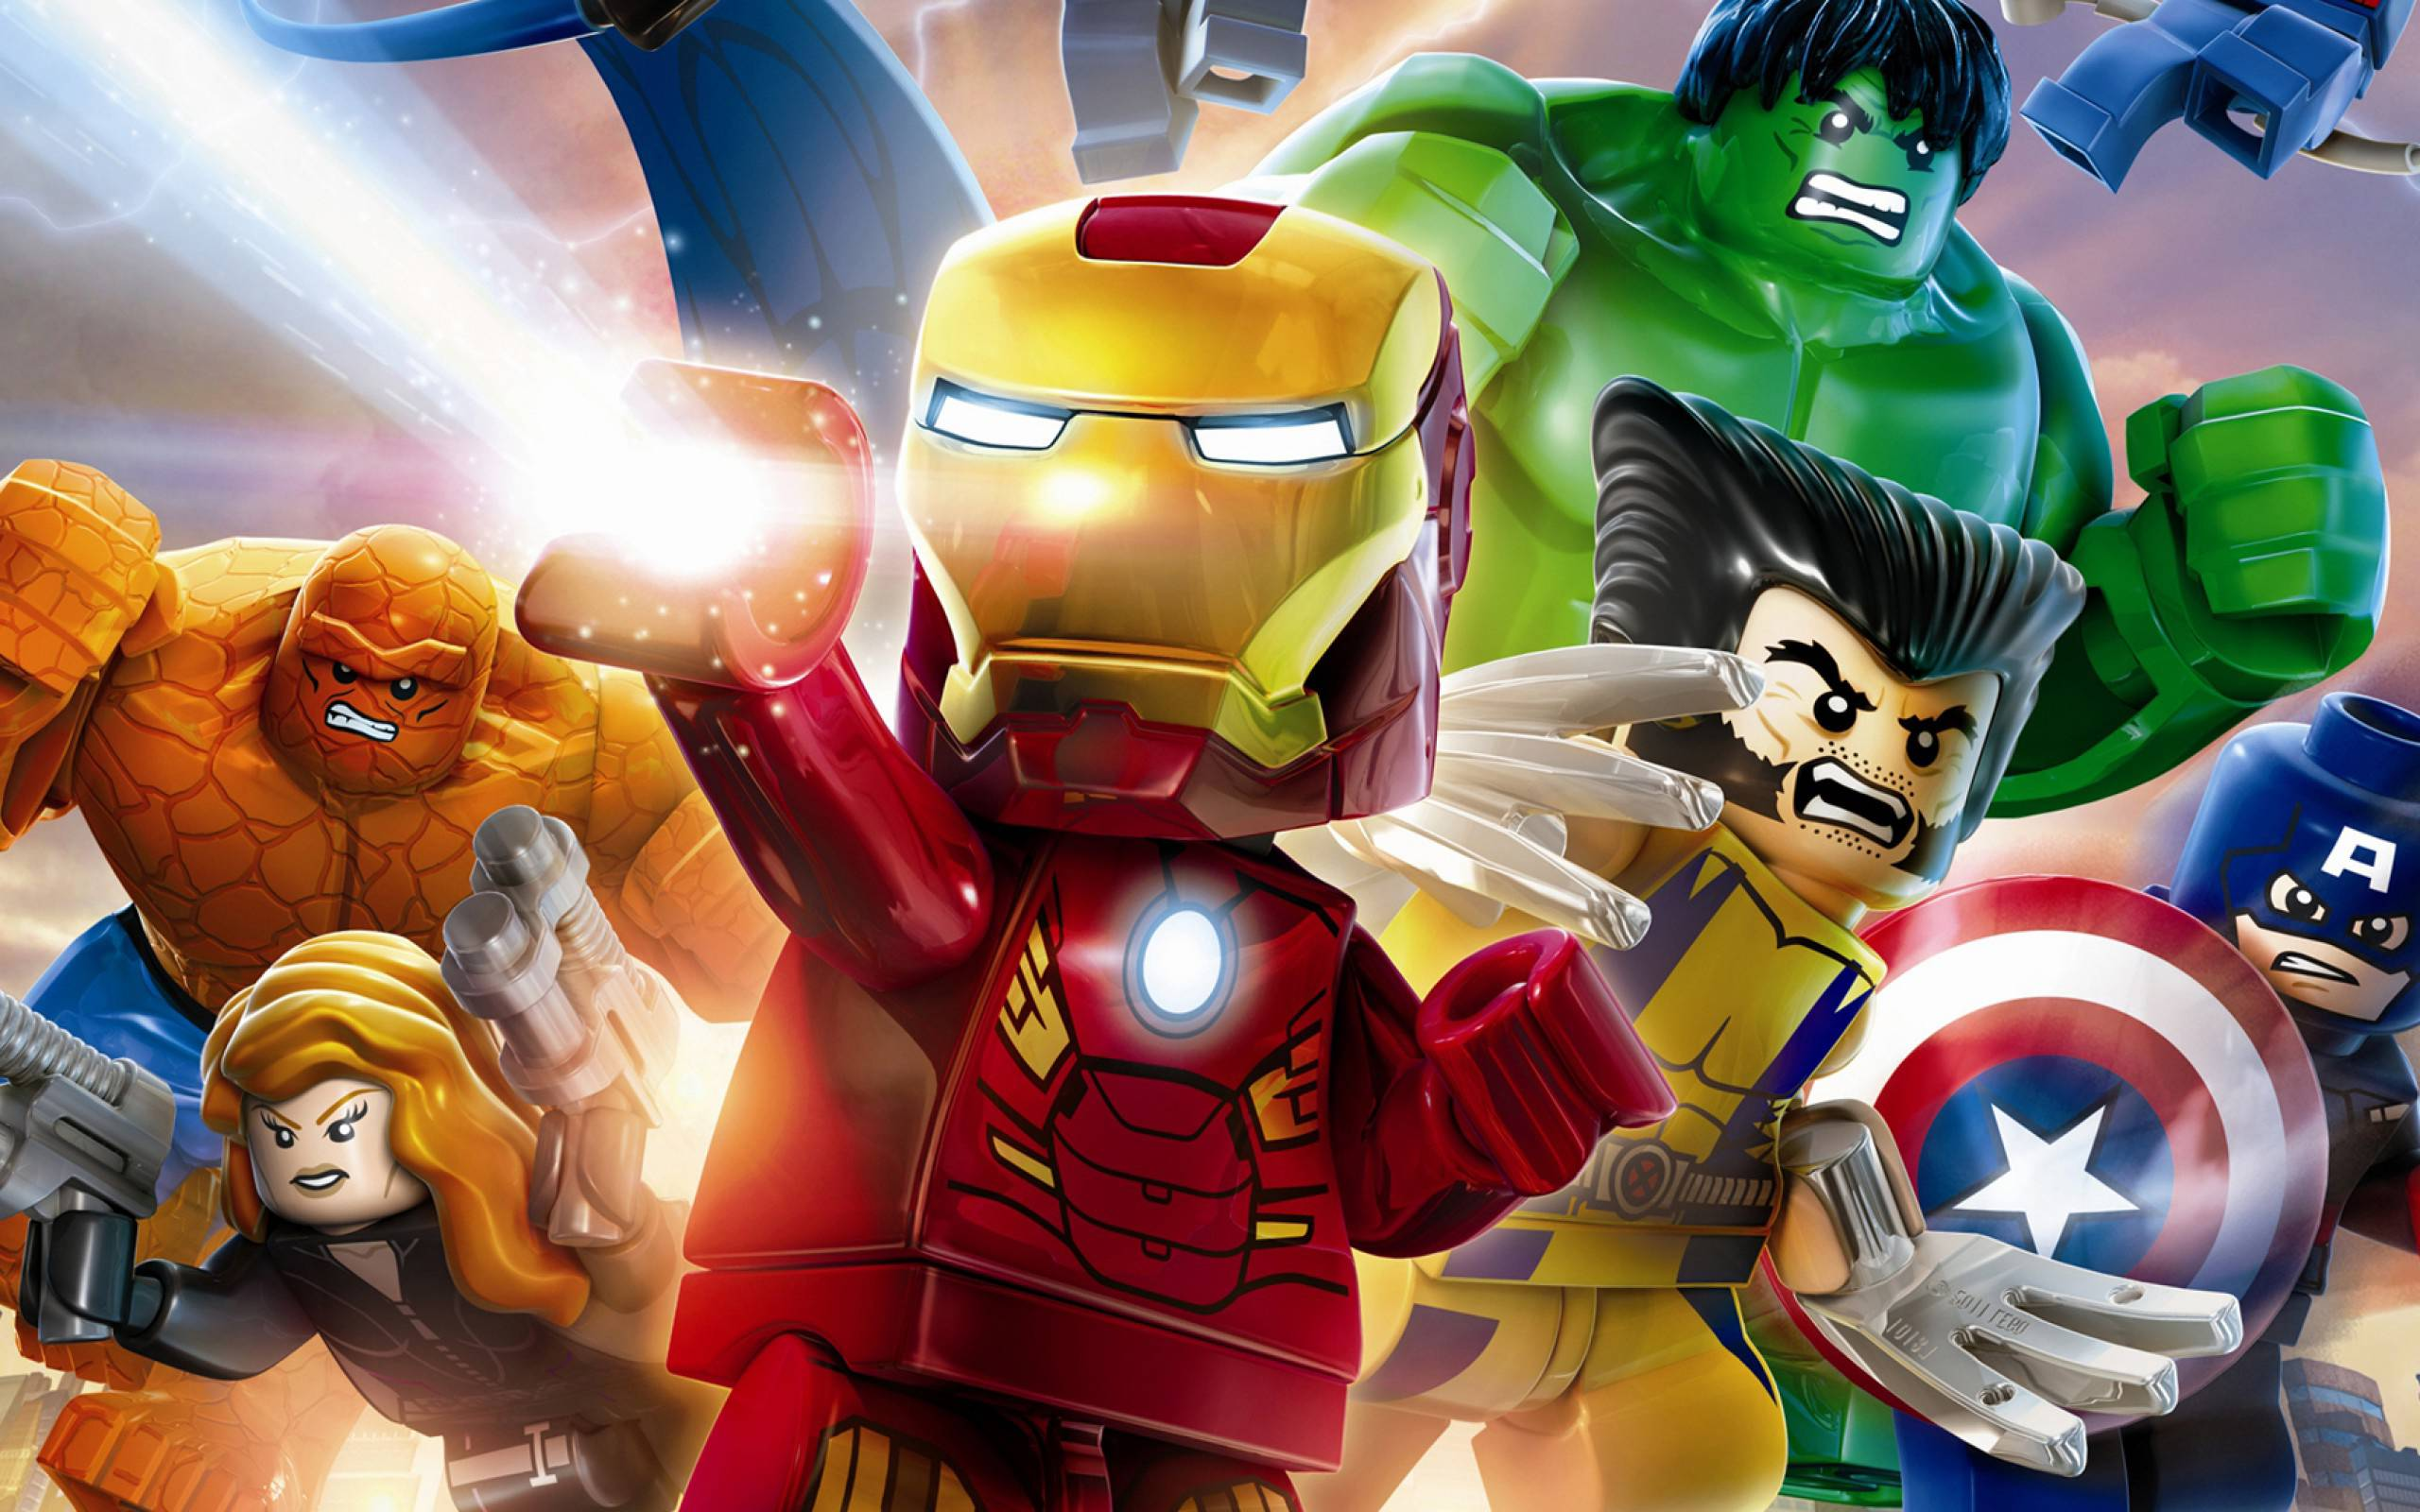 2560x1600 LEGO Marvel Super Heroes HD Wallpapers and Background Images - stmed.net